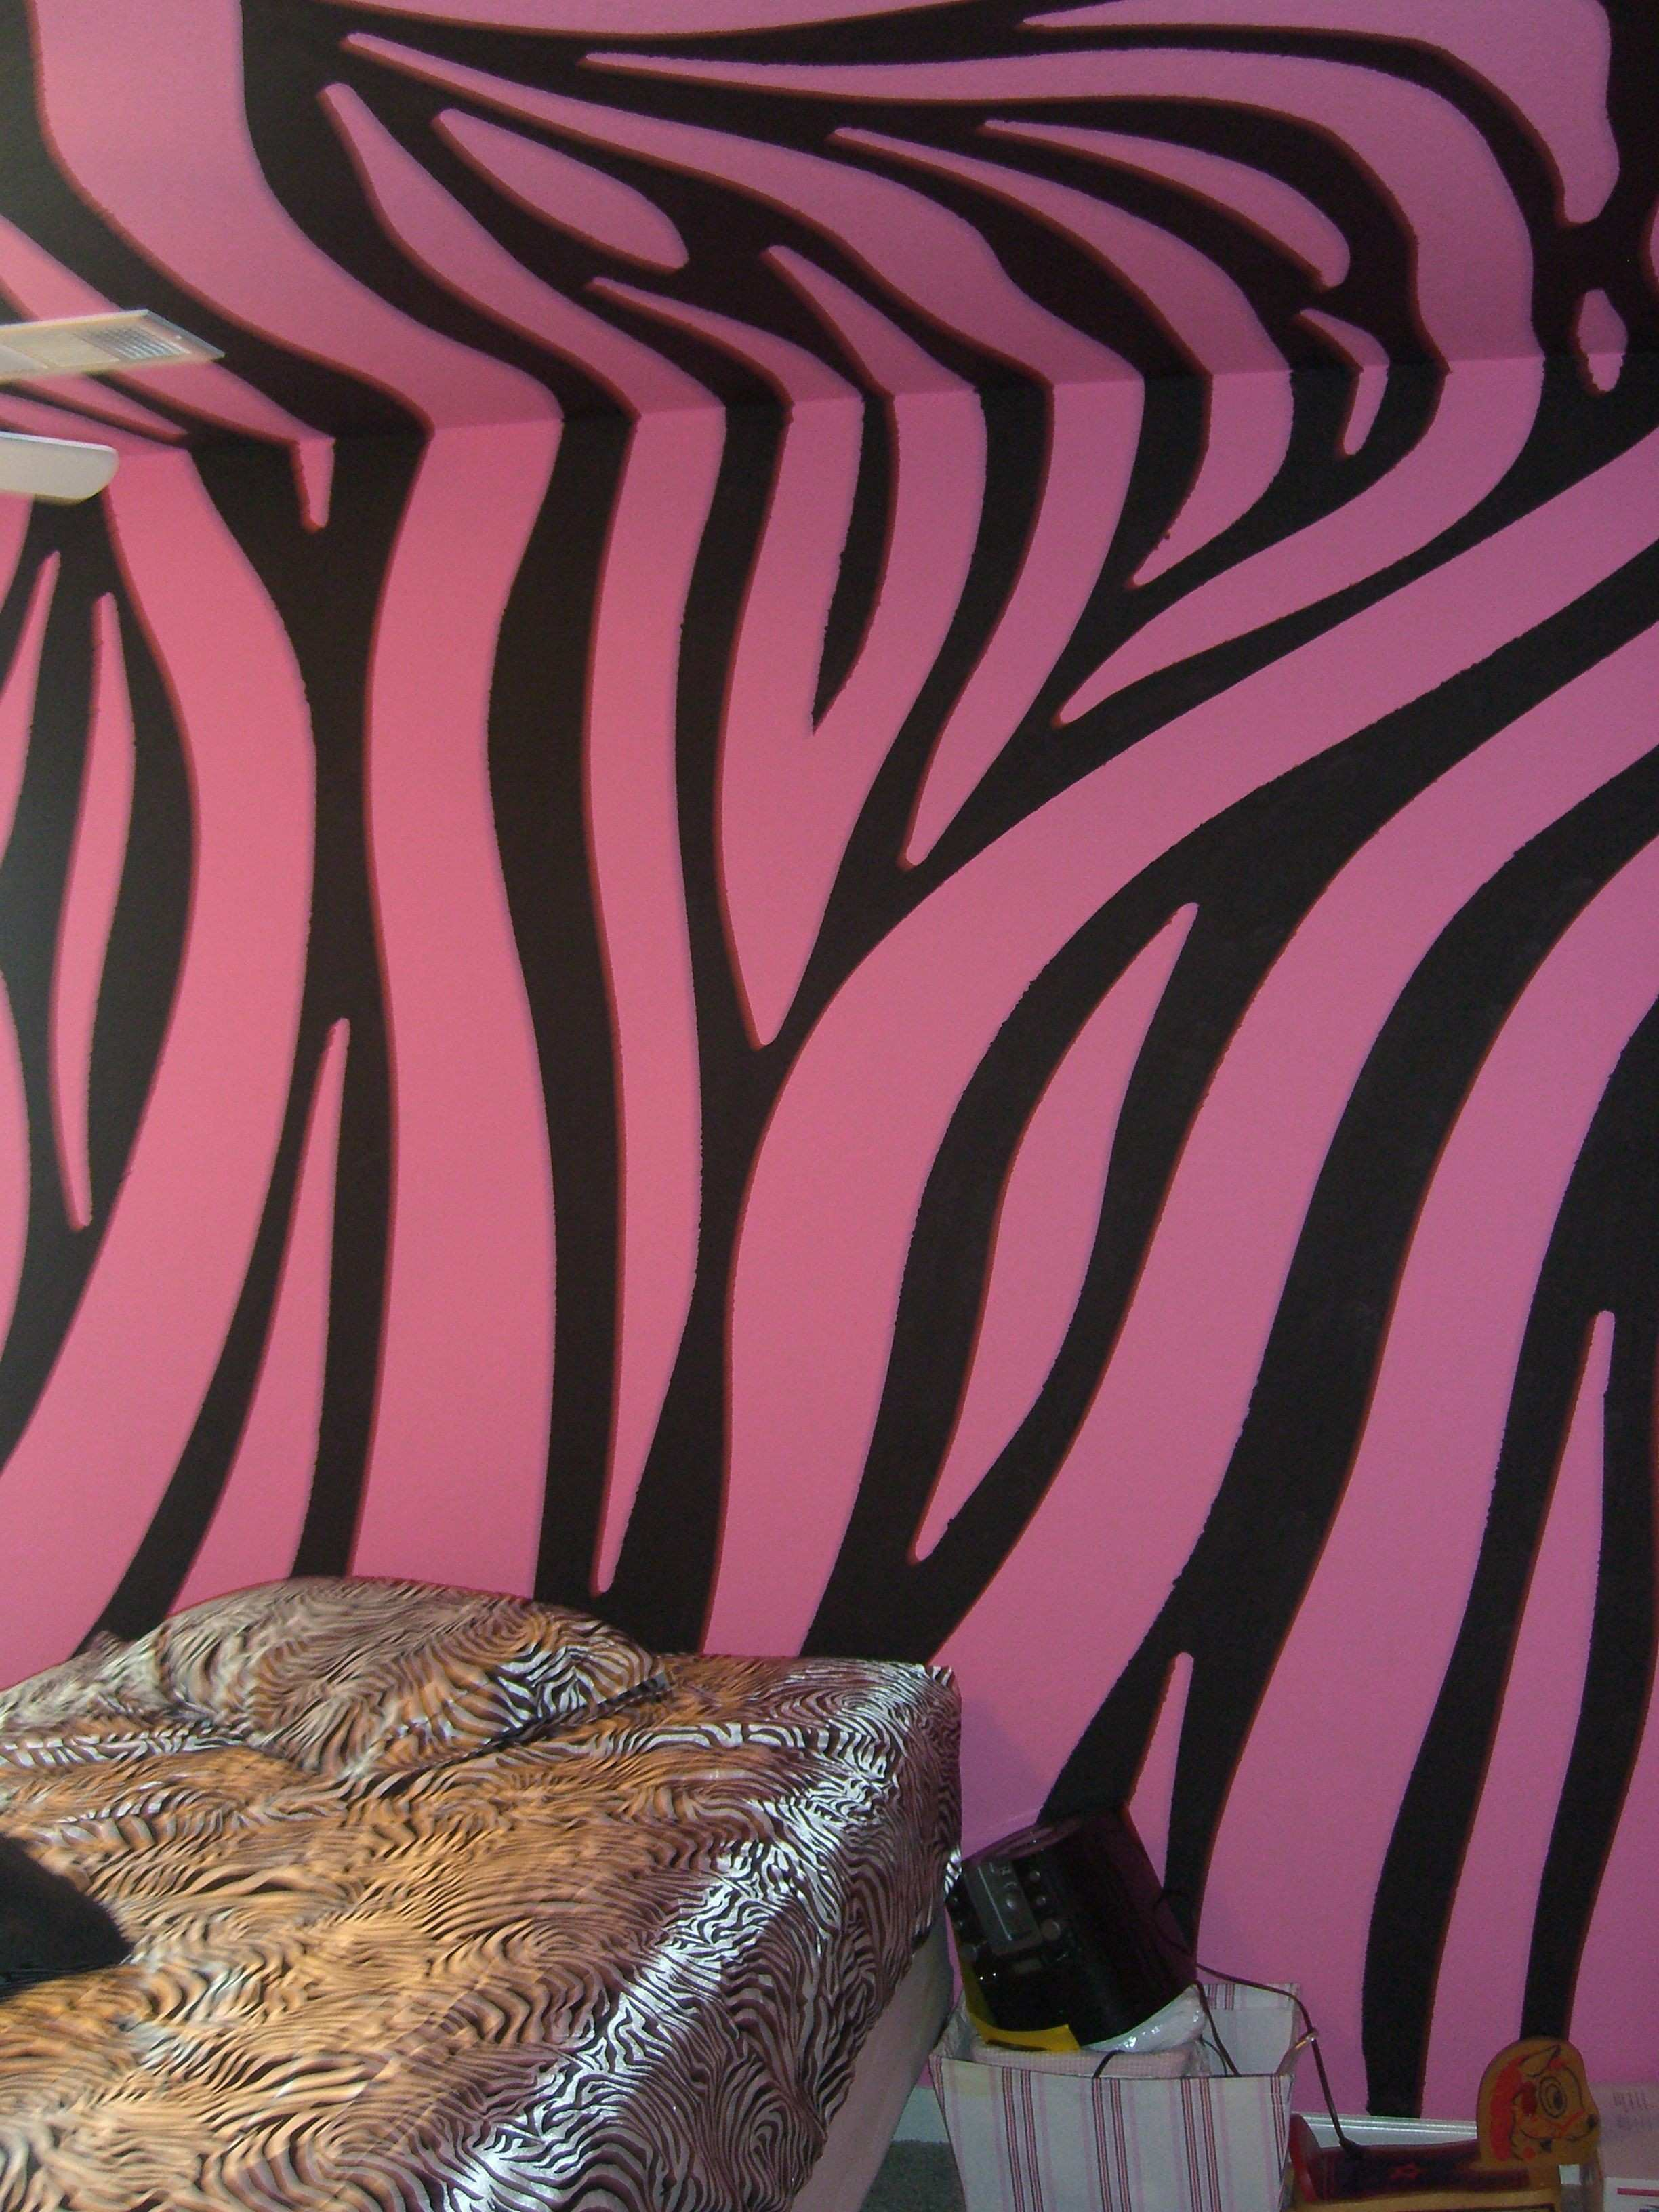 Super cool pink and black zebra walls painted by Chris w